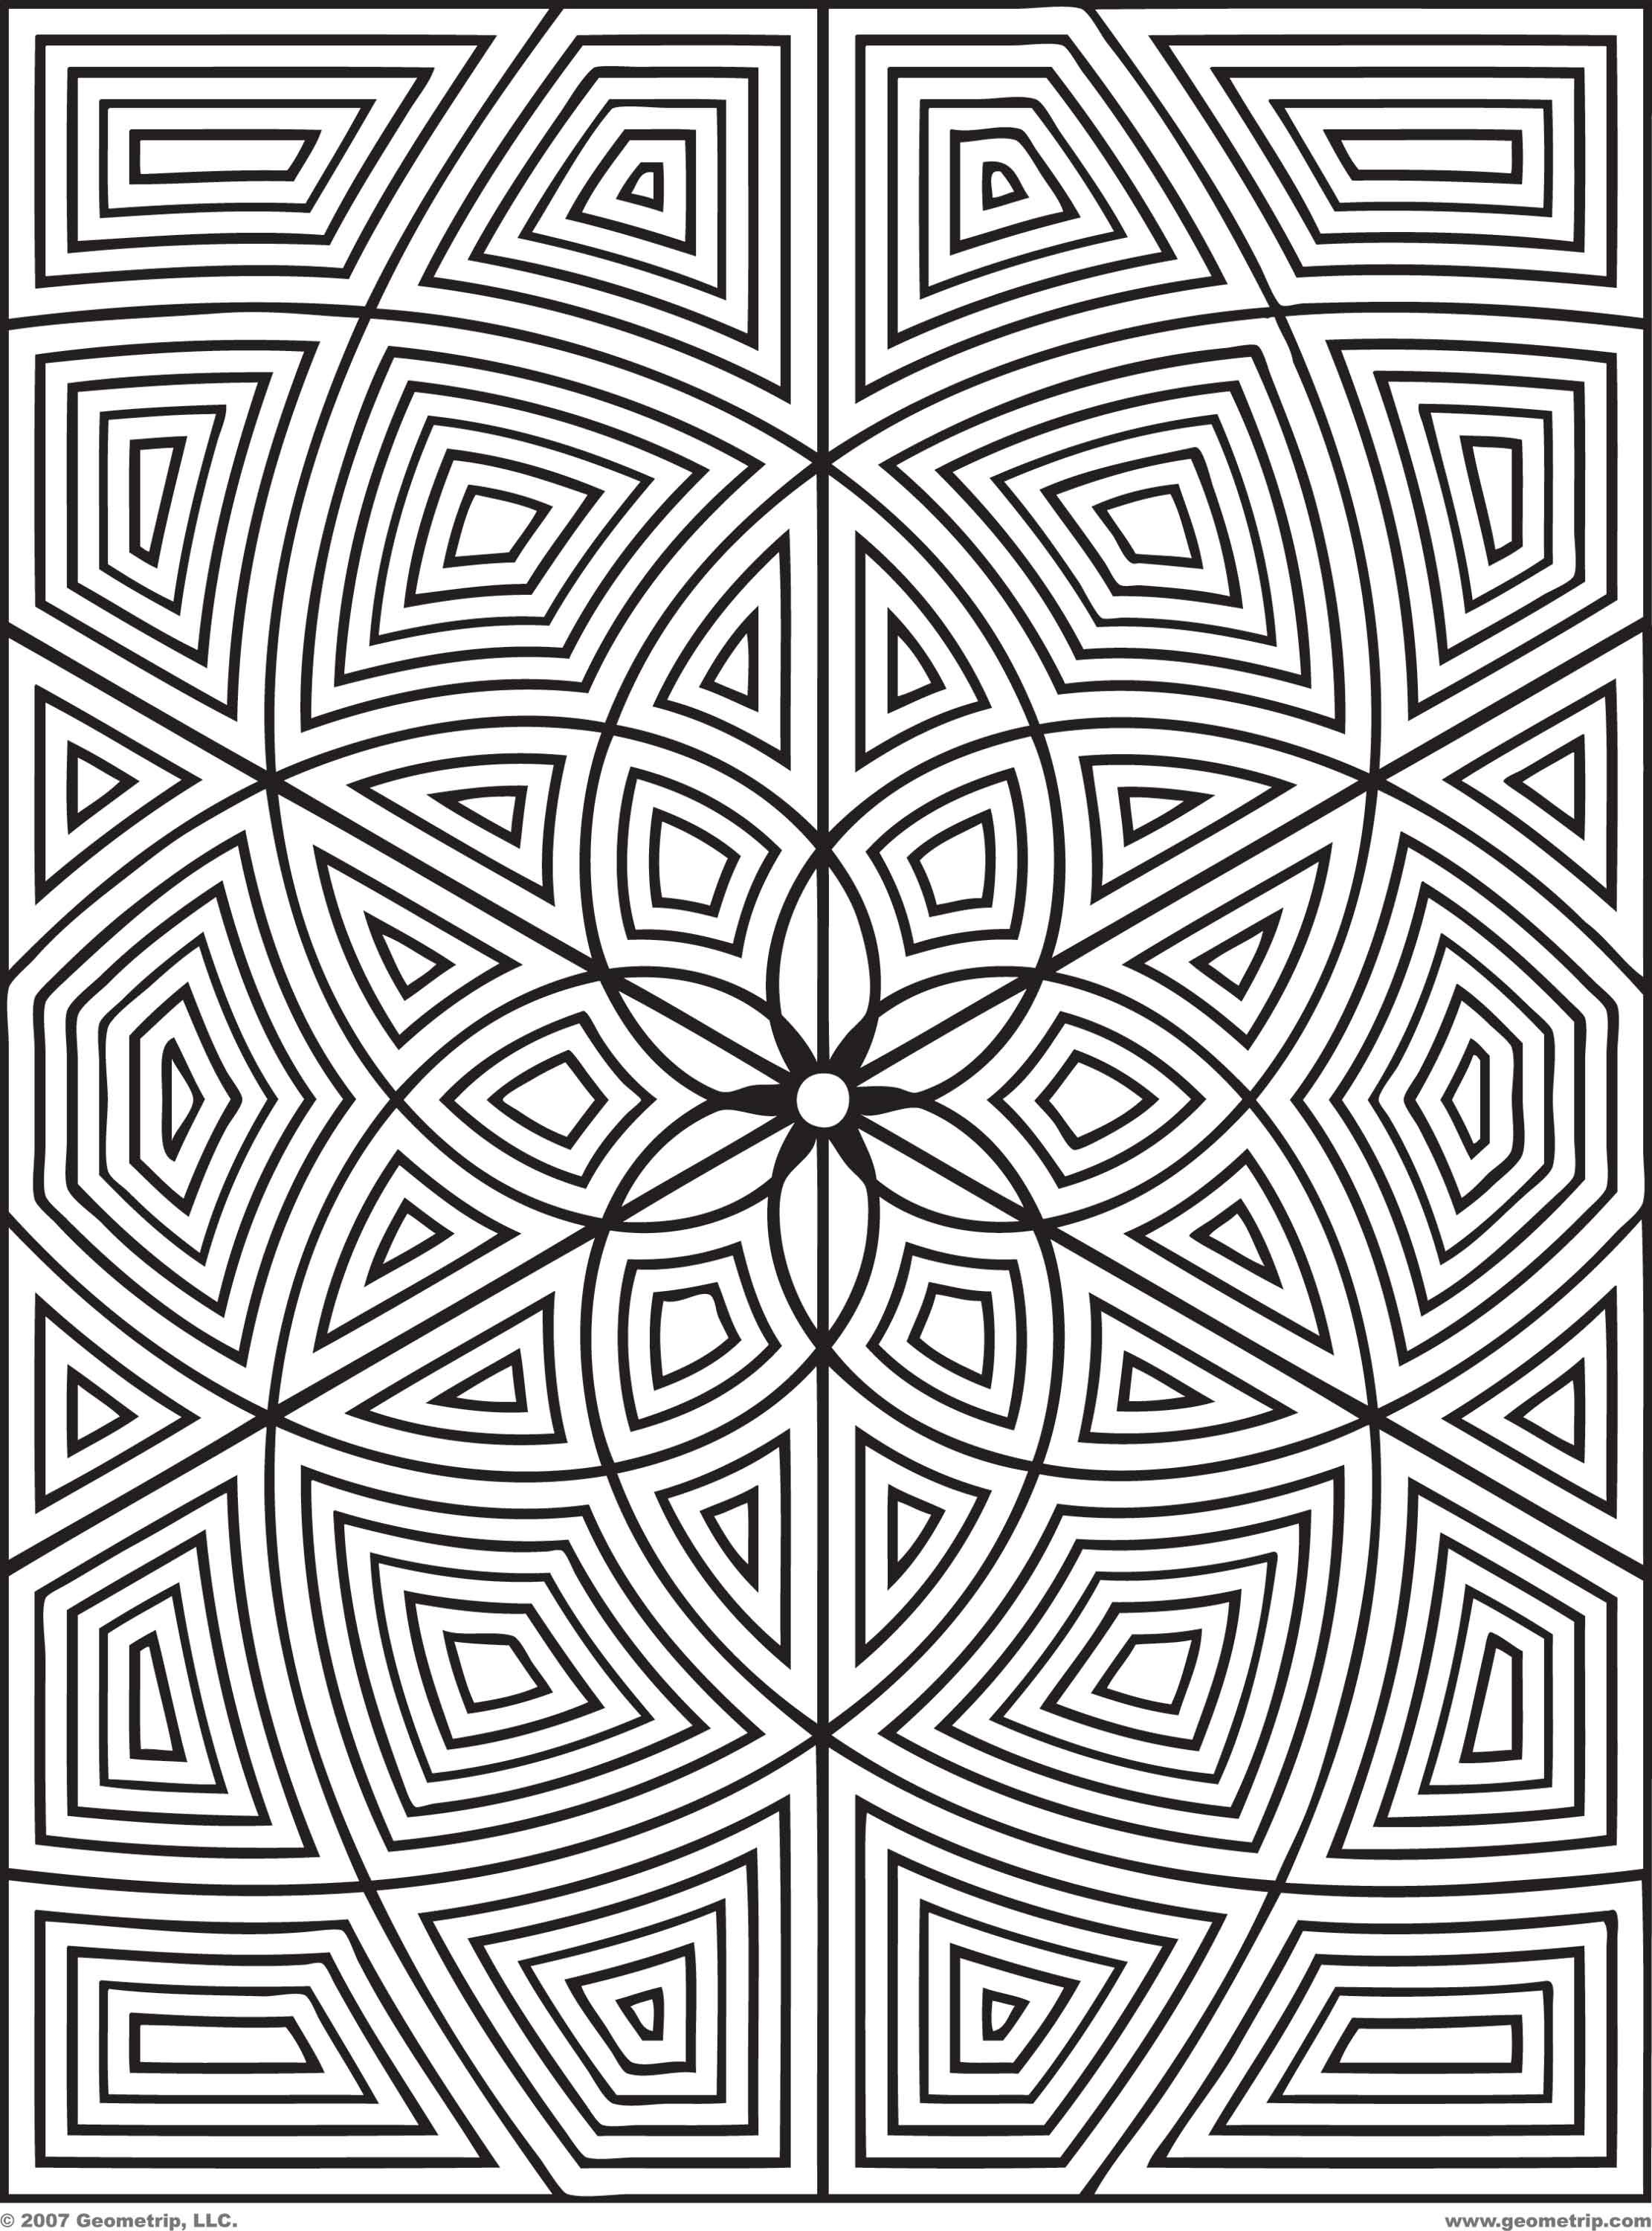 free geometric design coloring pages images crazy gallery - Coloring Pages Designs Shapes